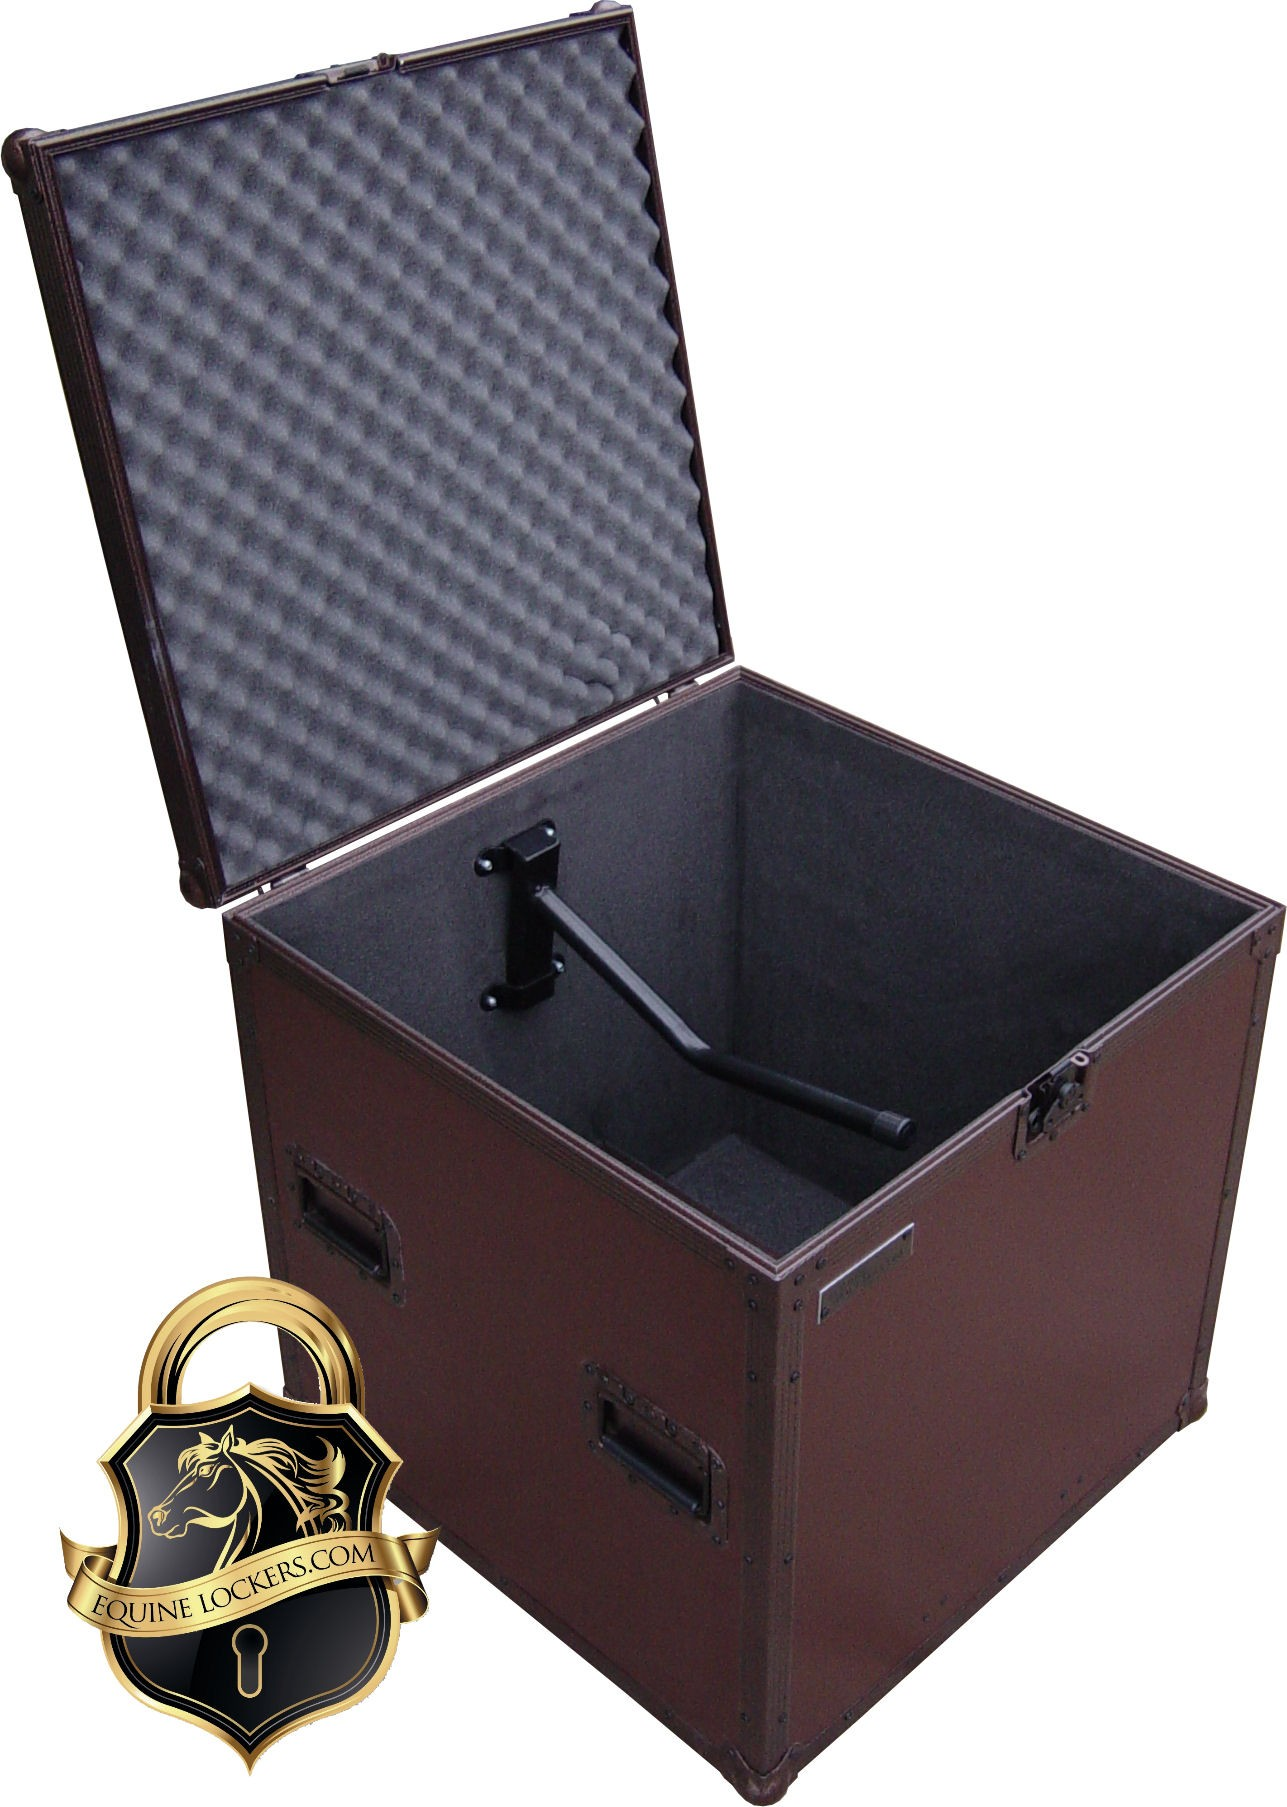 Sddle box open